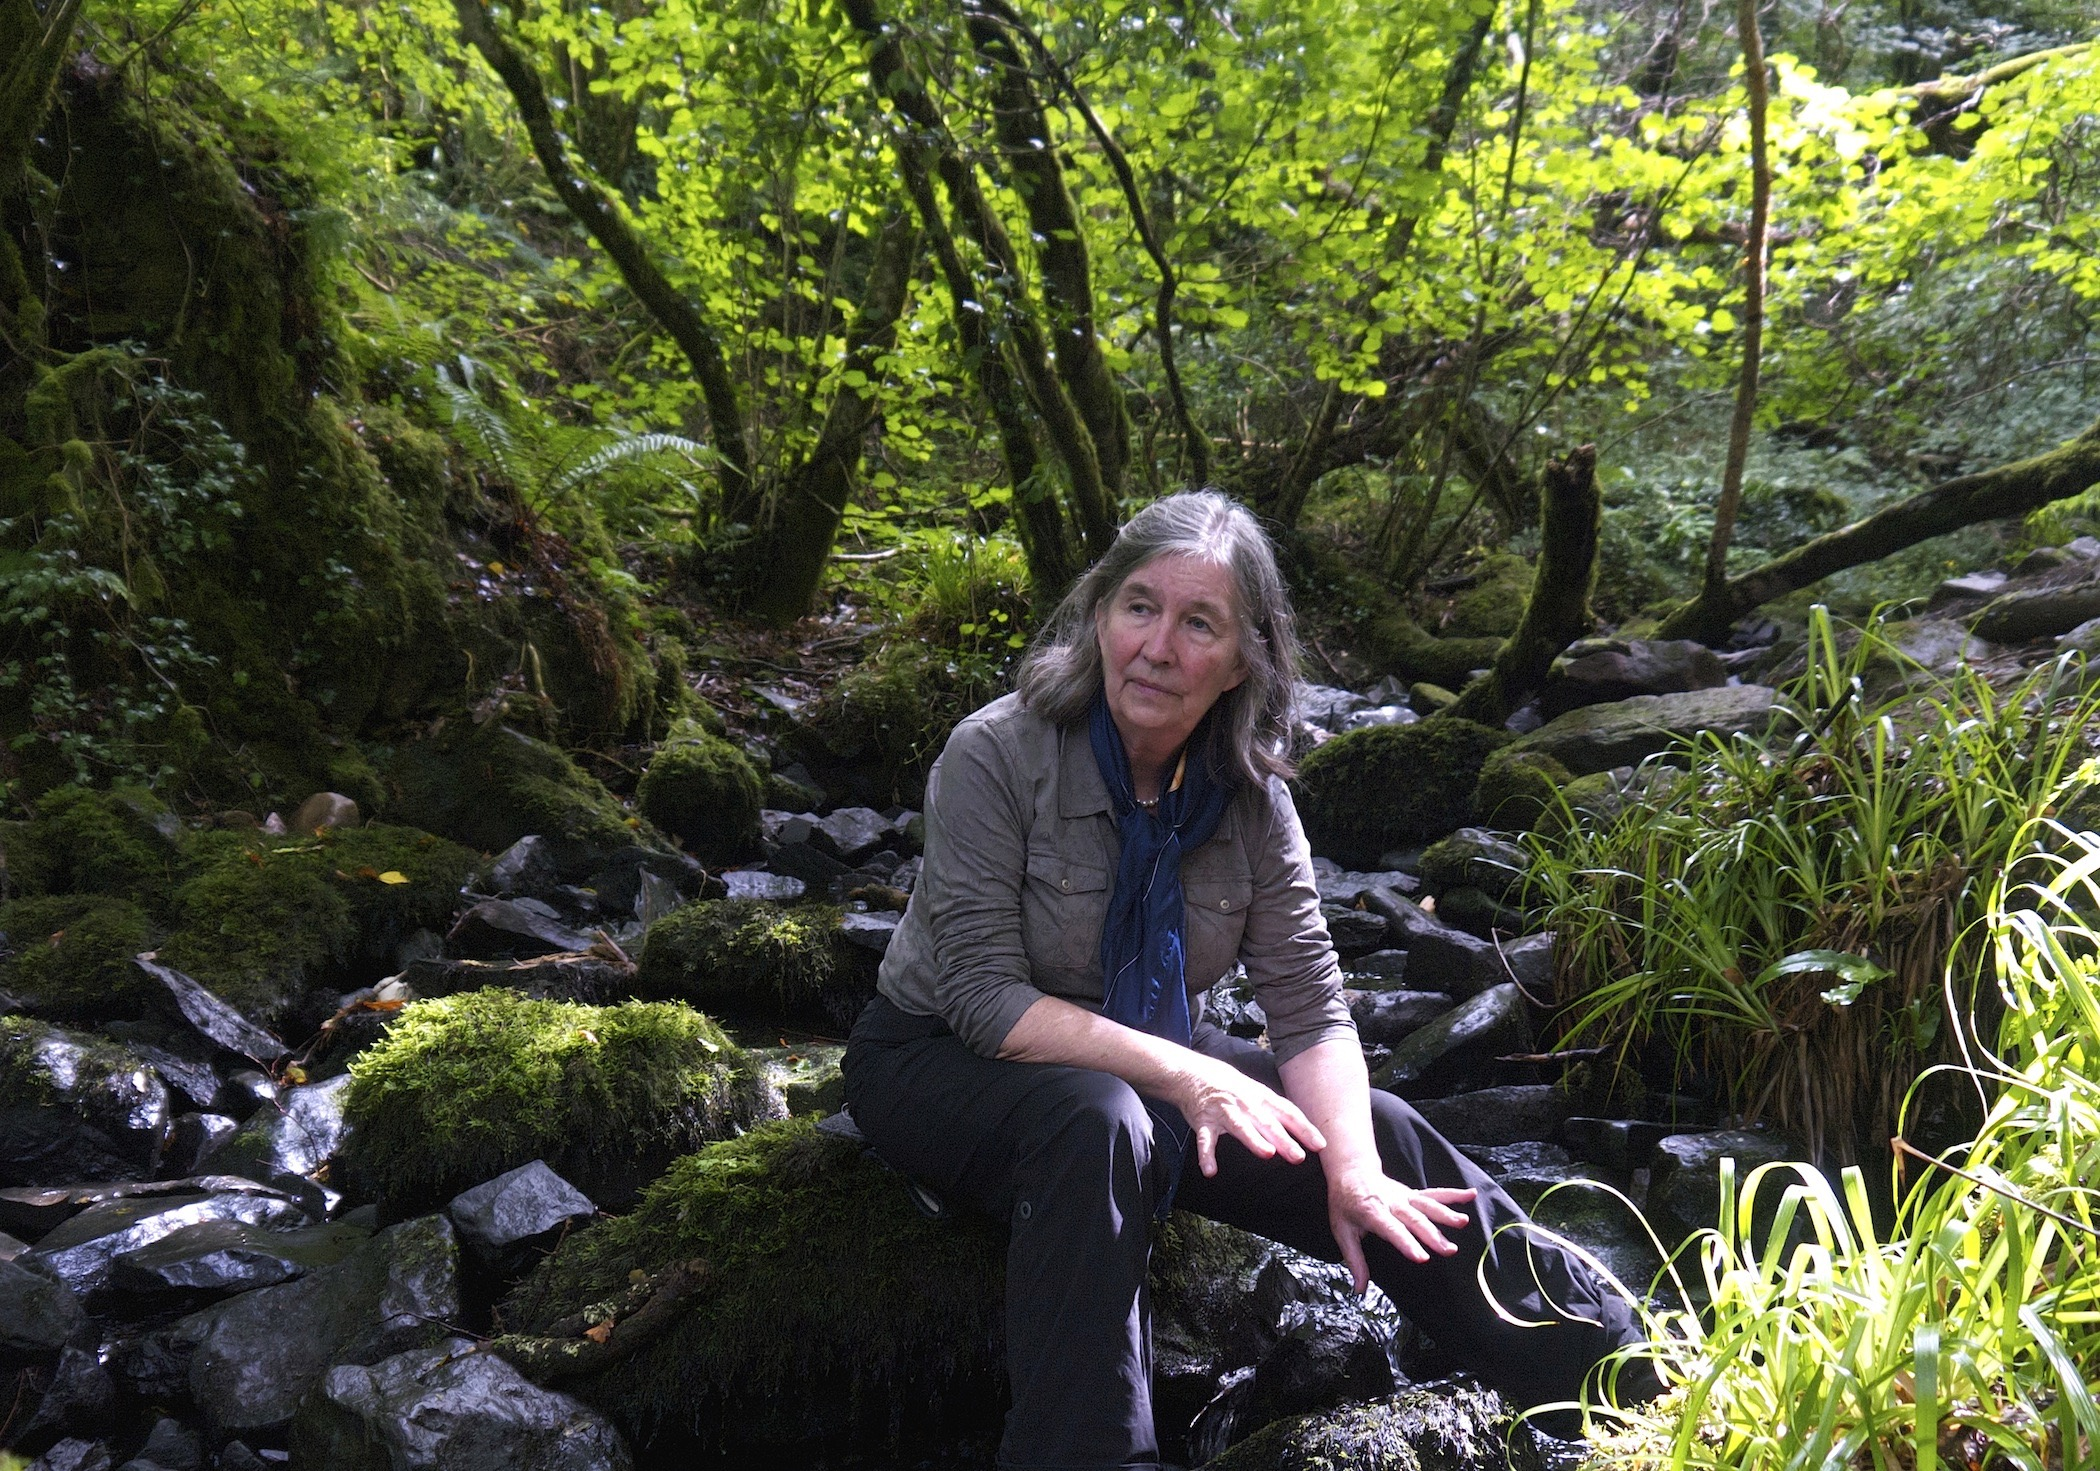 Photo of Diana in a forest with a stream